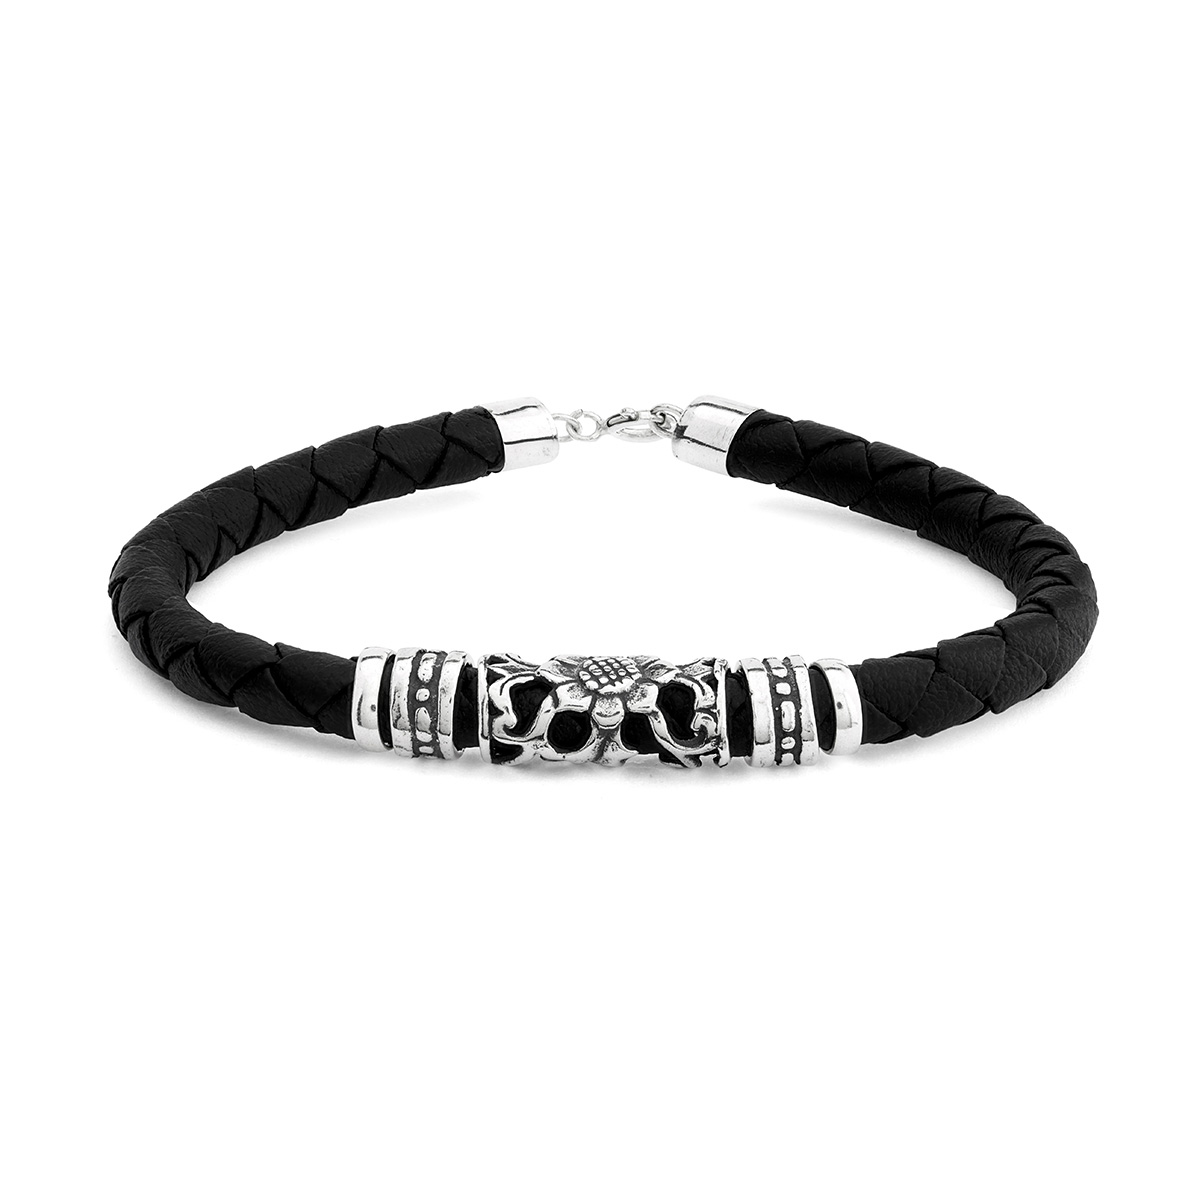 Catu Silver Bracelet - Handcrafted Sterling Silver Jewellery from Bali by Nusa